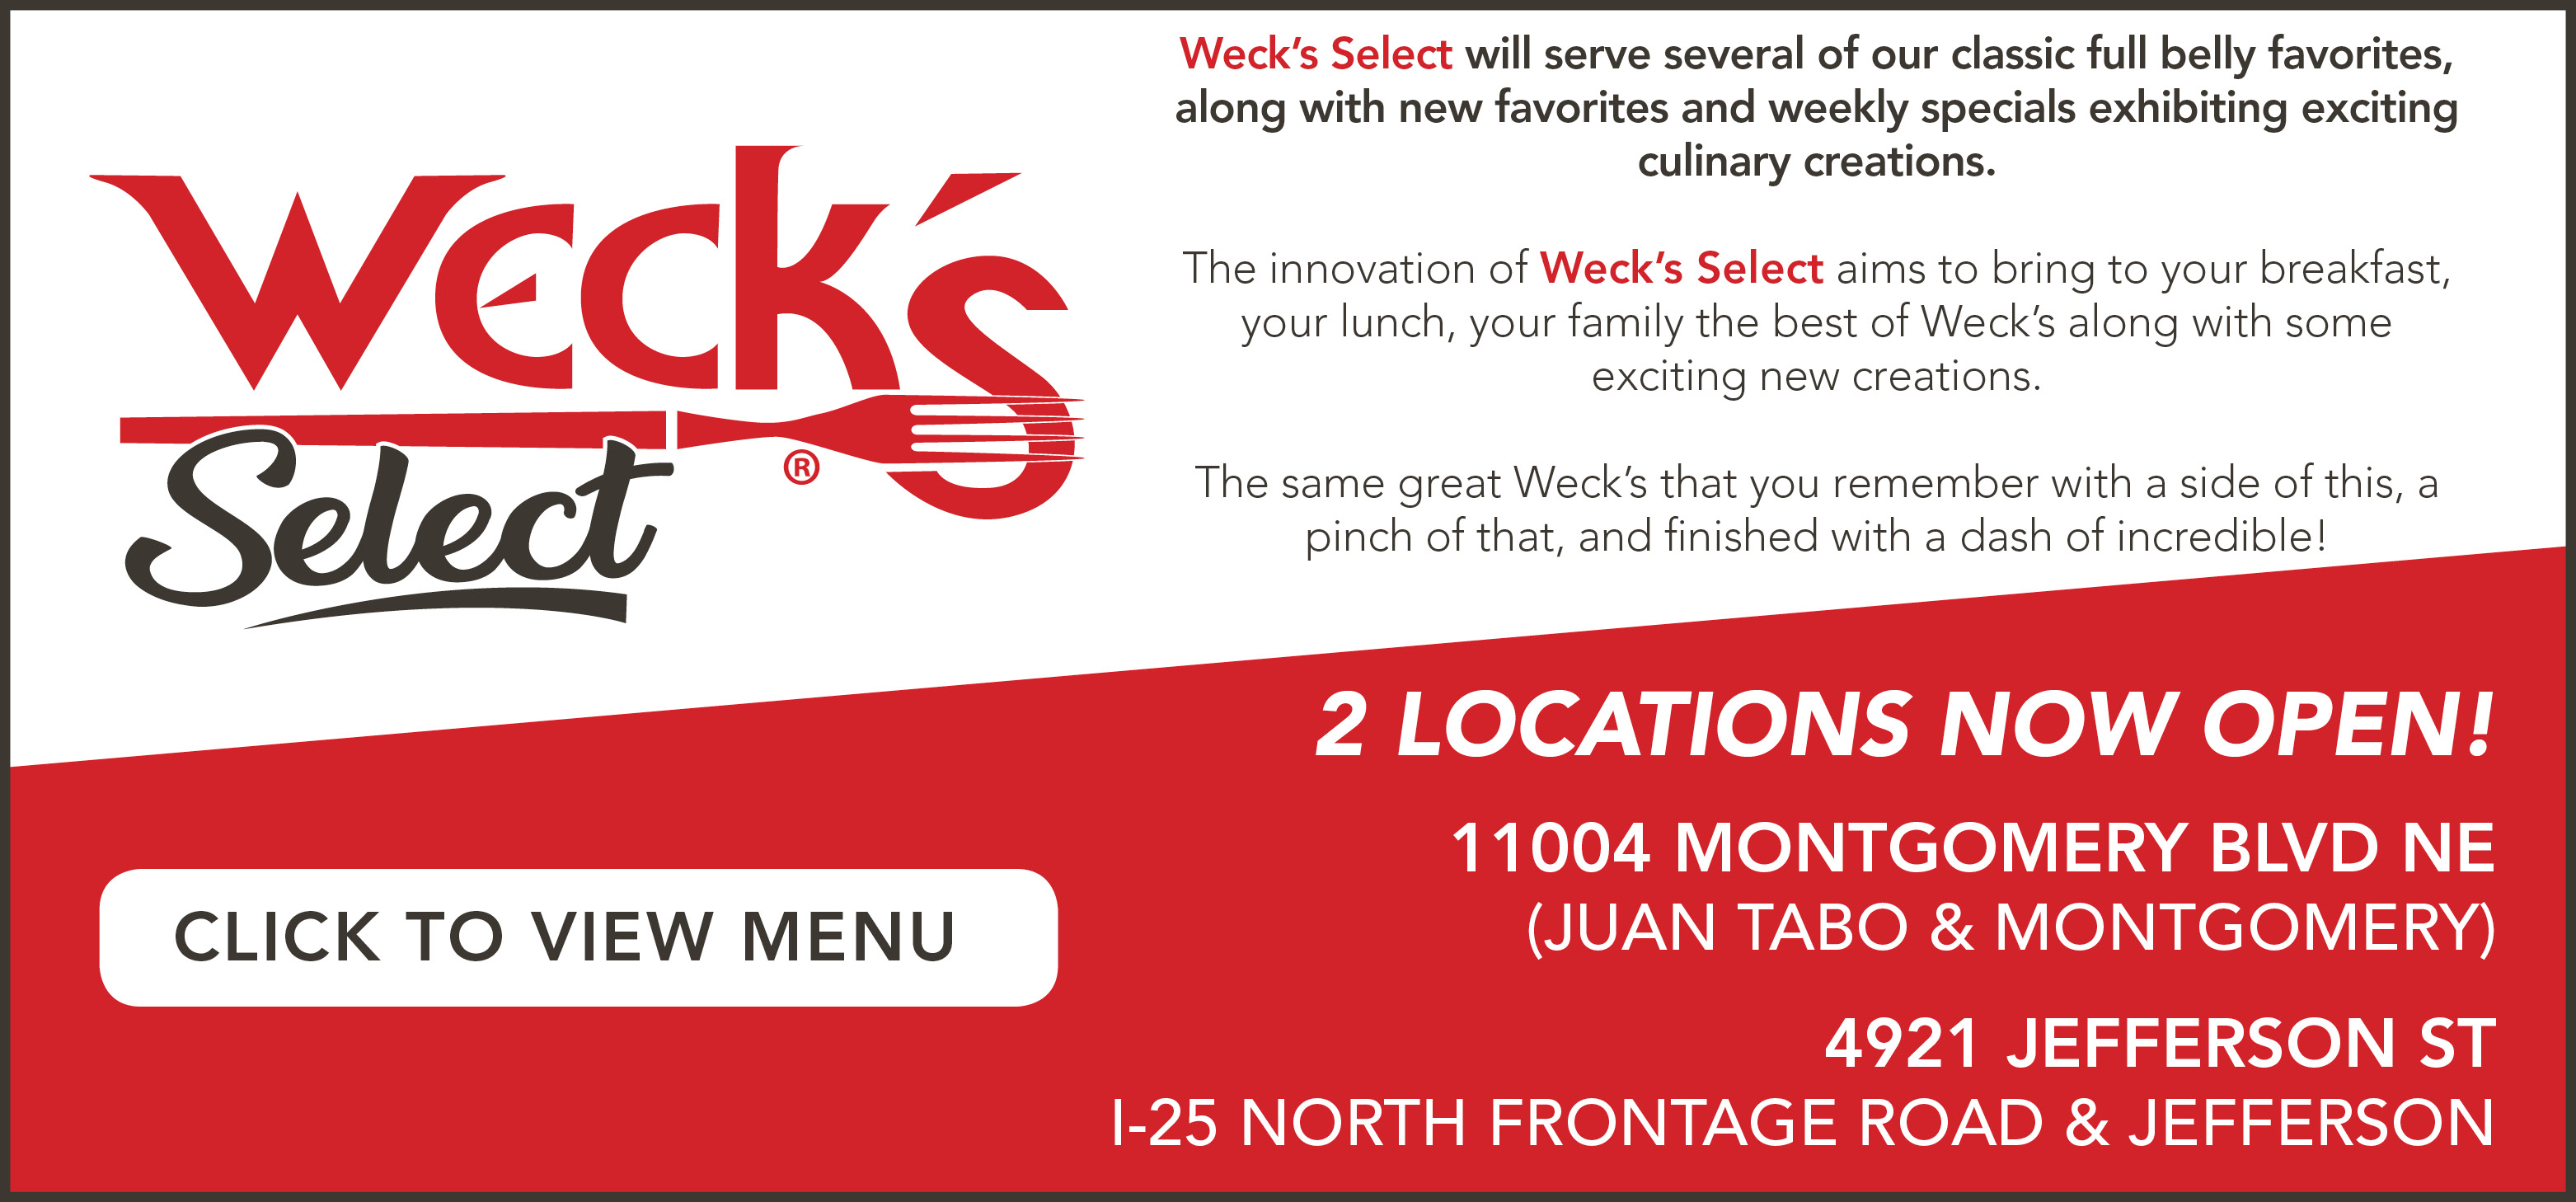 Weck's Select